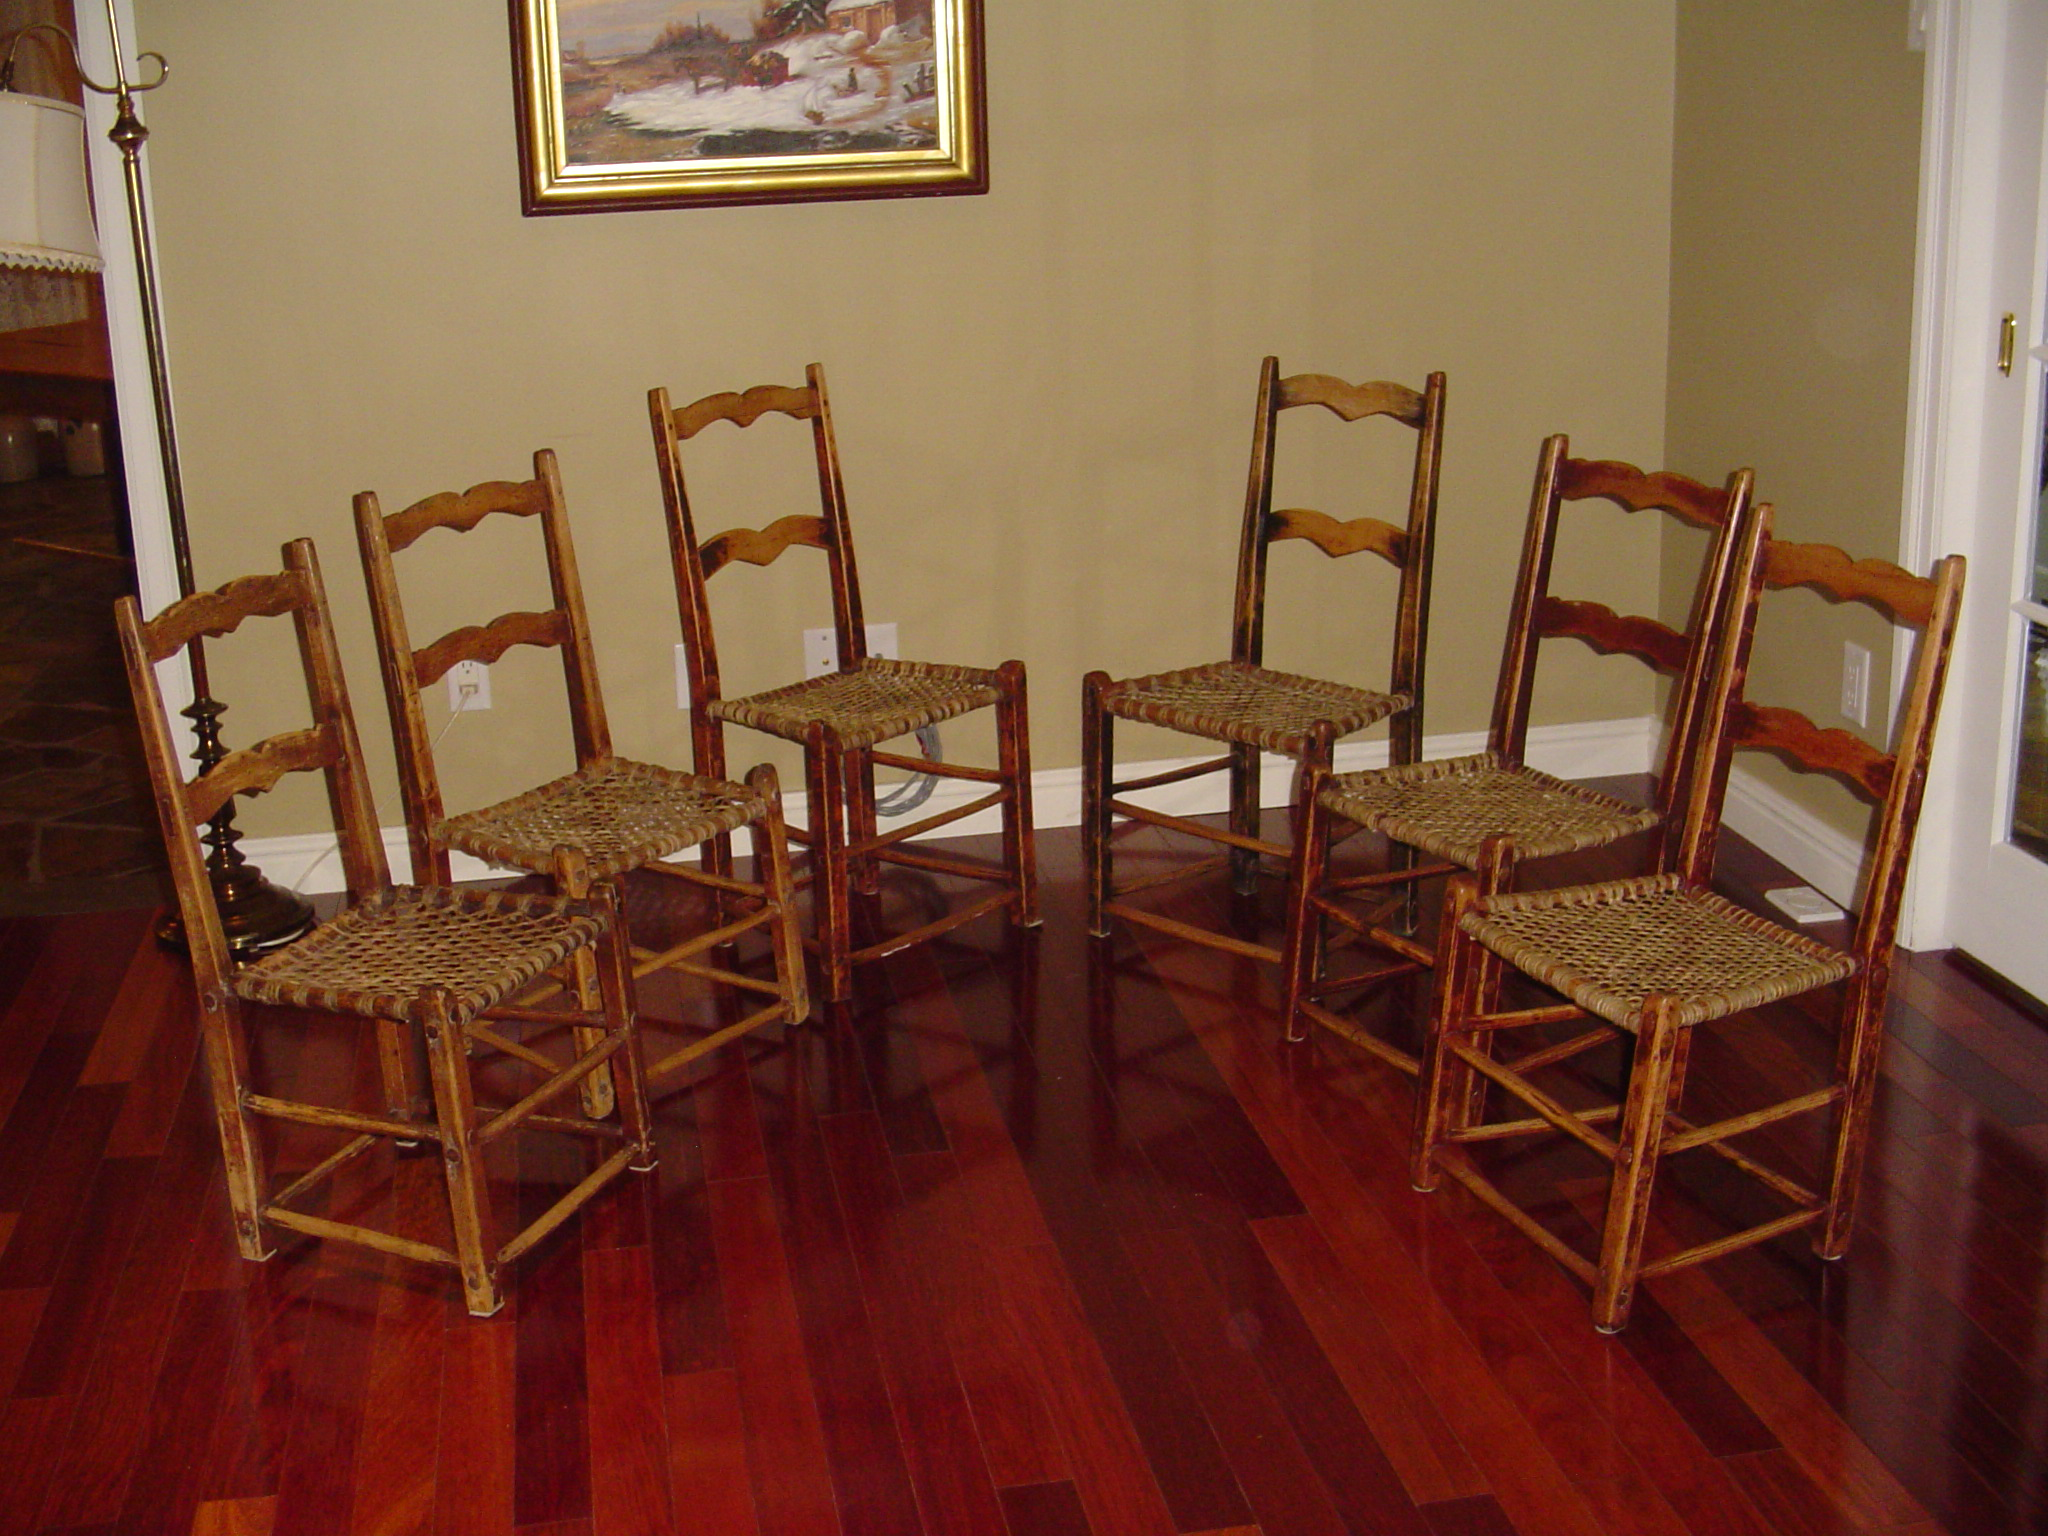 SET OF PRIMITIVE CHAIRS IN THE CAPUCINE MANNER   Canadian pine wood  furniture     For Sale. SET OF PRIMITIVE CHAIRS IN THE CAPUCINE MANNER   Canadian pine